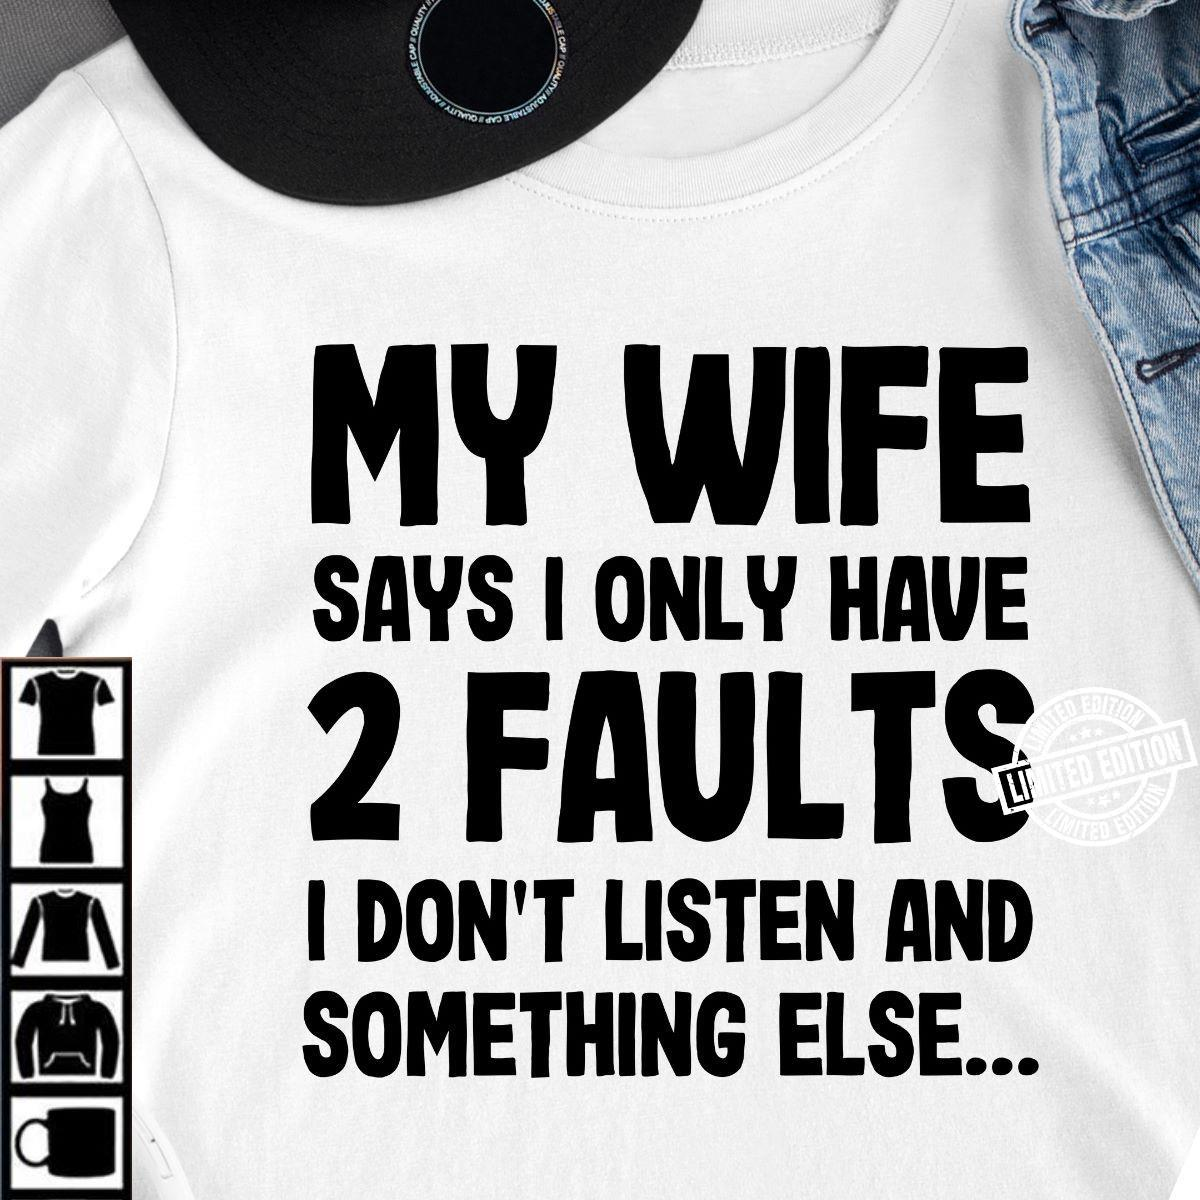 My wife says I only have 2 faults I don't listen and something else shirt